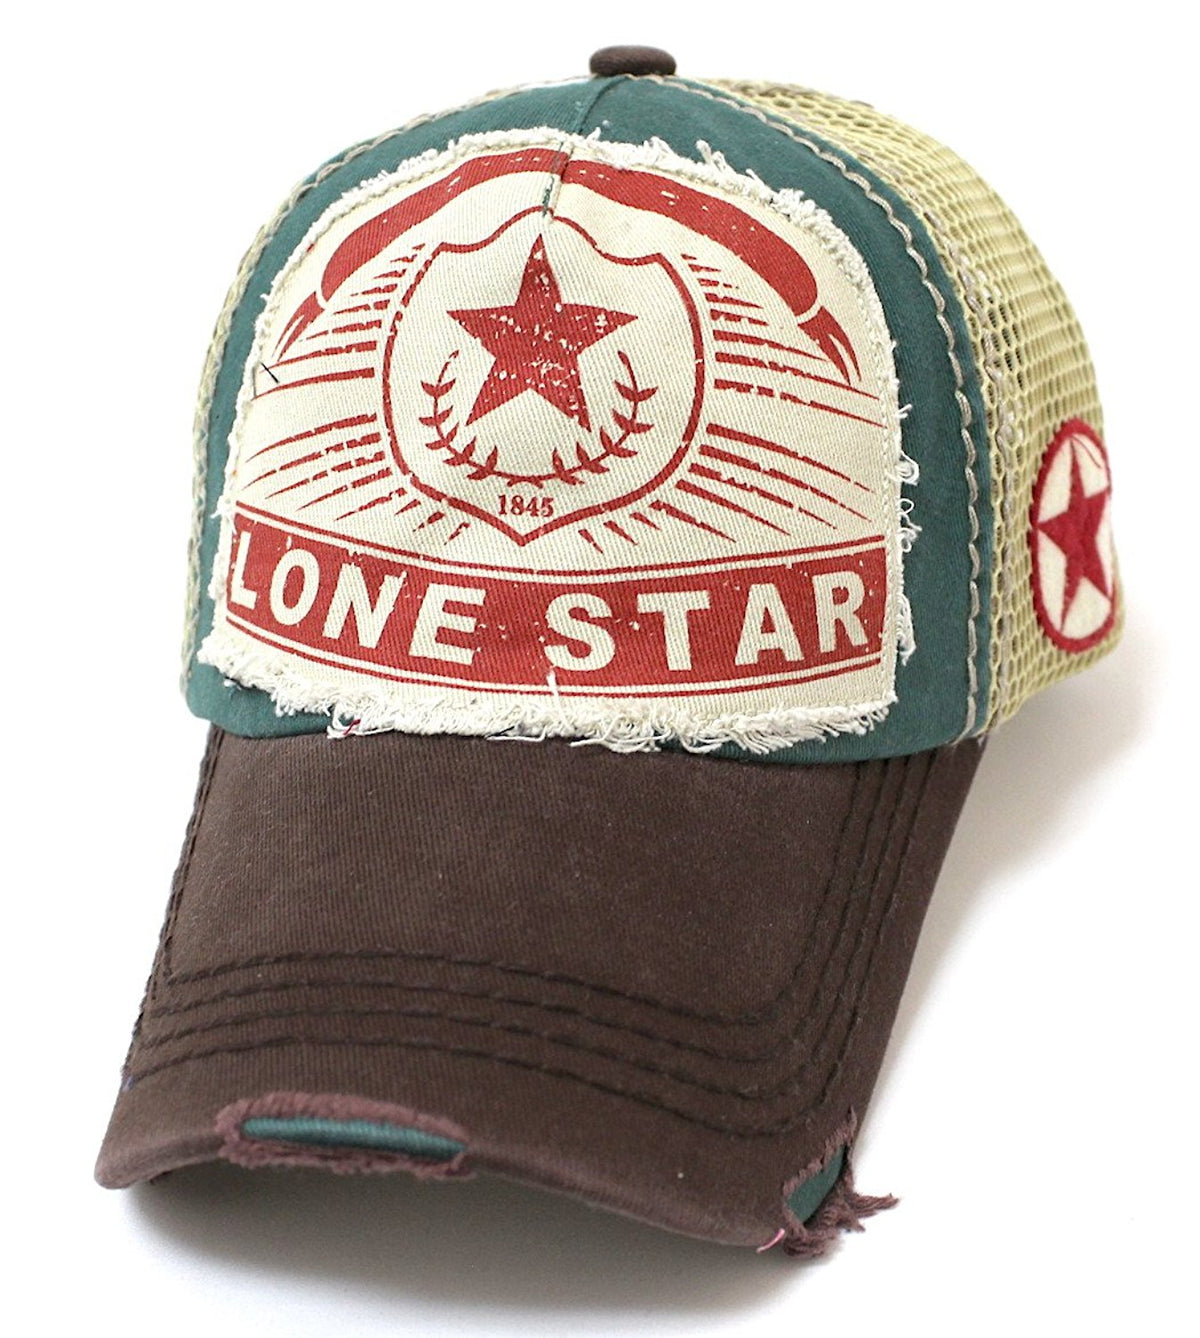 CAPS 'N VINTAGE Meshback Lonestar Distressed, Patch Embroidery Trucker Hat - Caps 'N Vintage